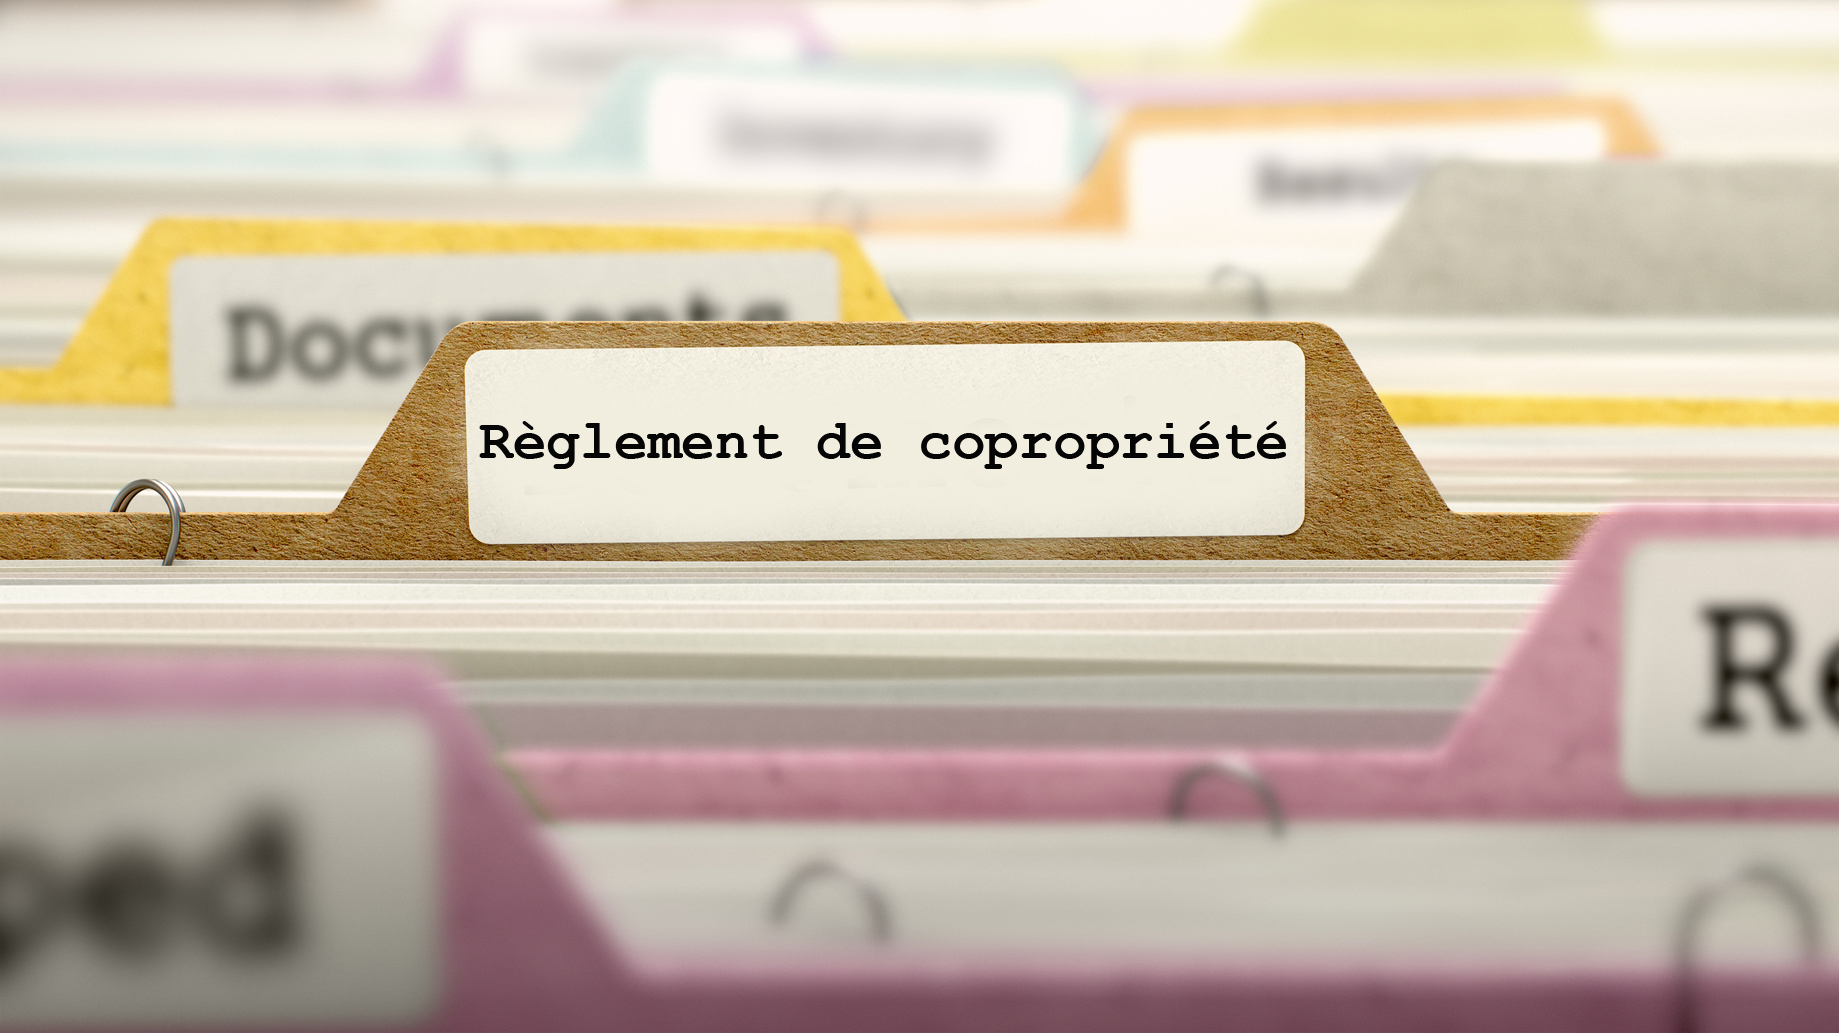 R glement de copropri t for Reglement interieur immeuble